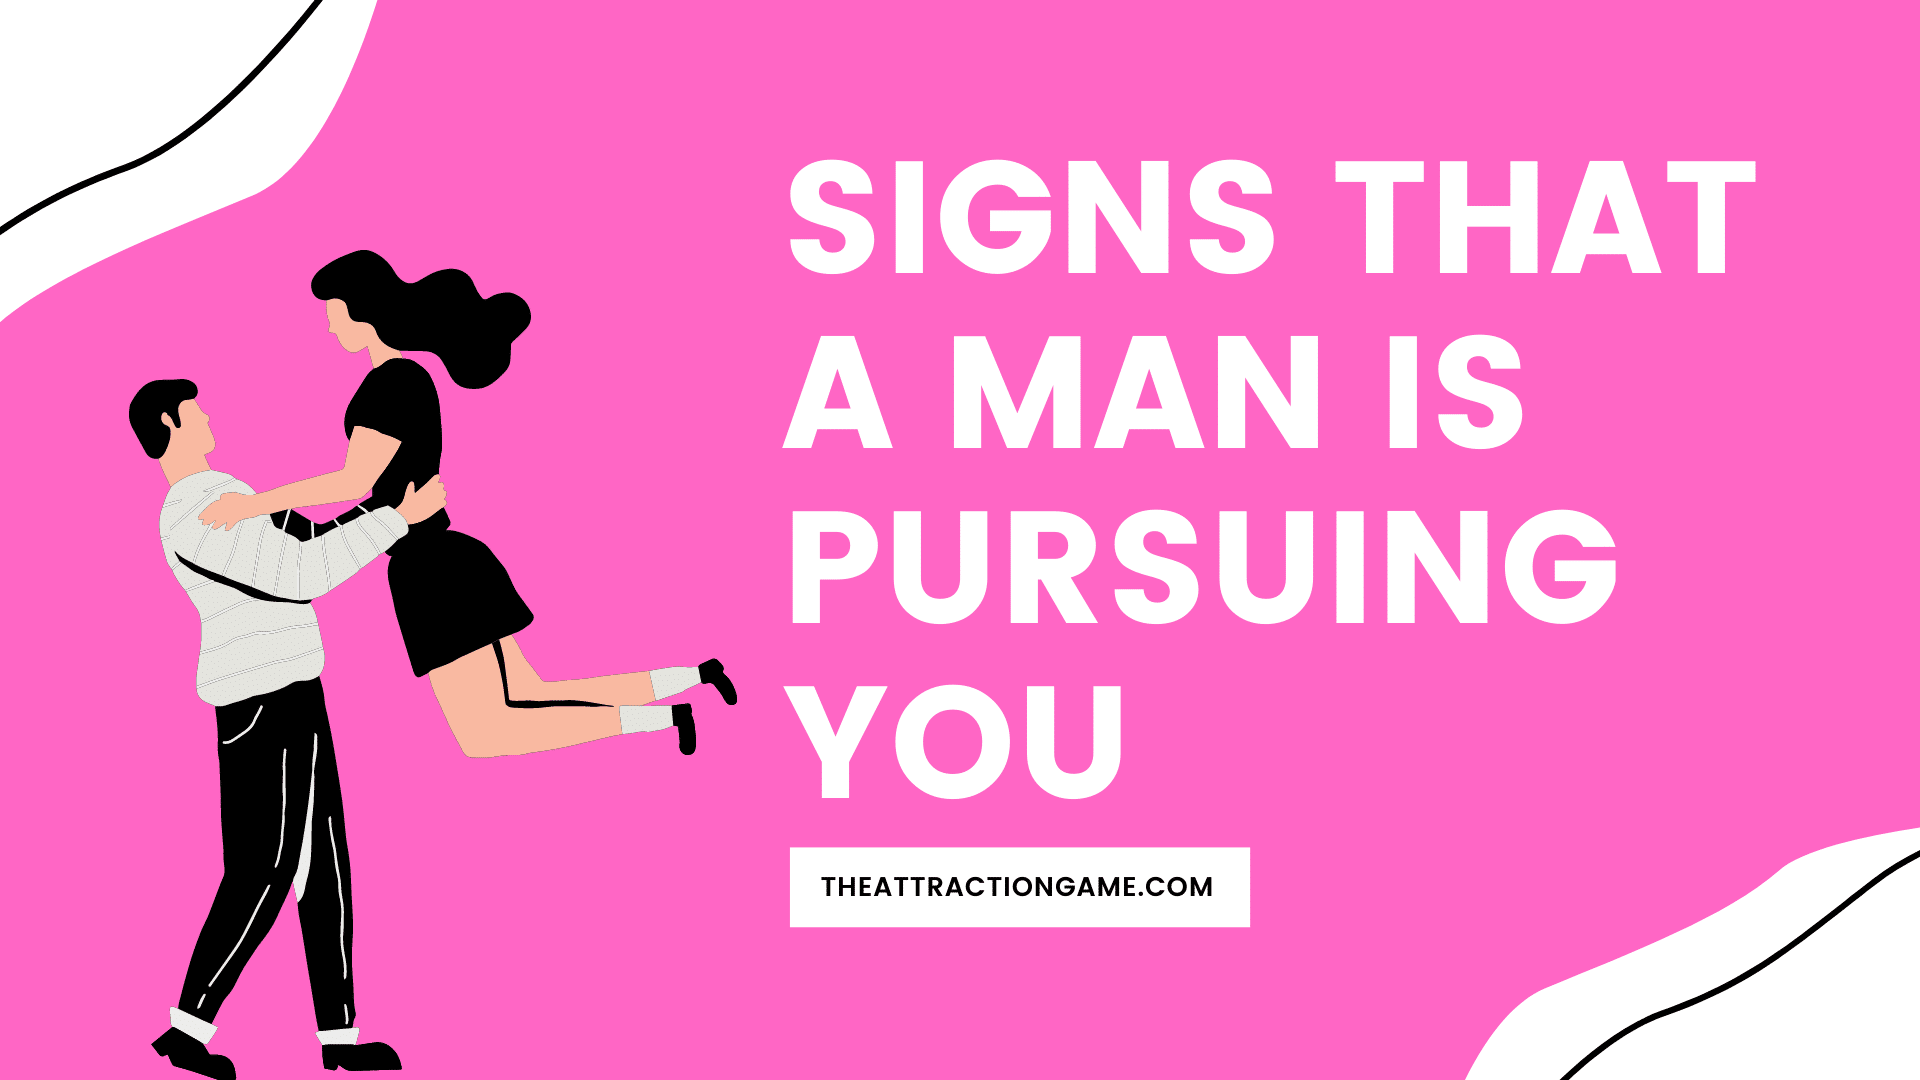 signs that he is pursuing you, signs that he's pursuing you, signs that a man wants you, signs that a man is pursuing you